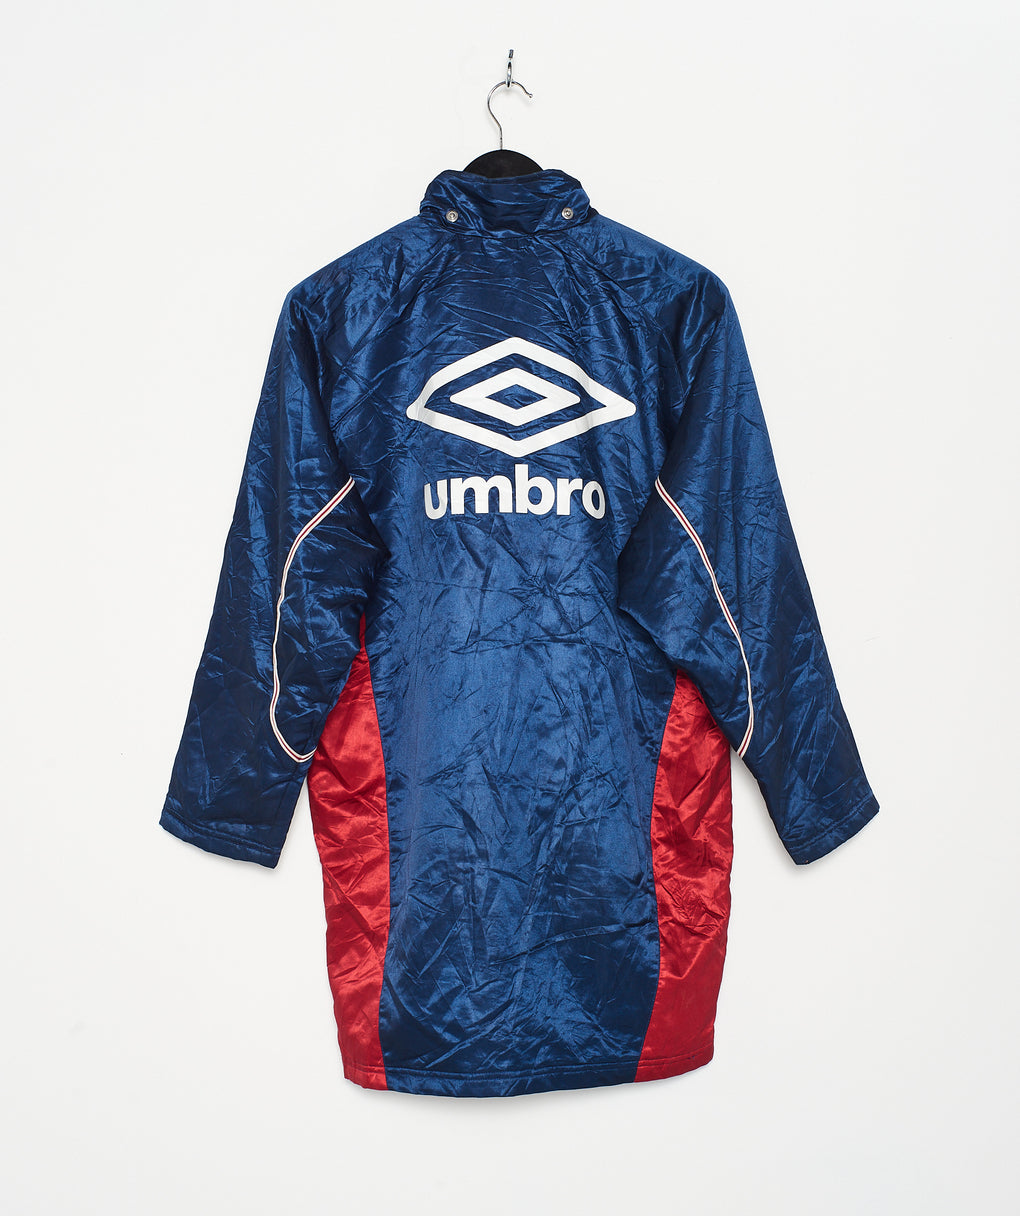 UMBRO WINTER JACKET (S)